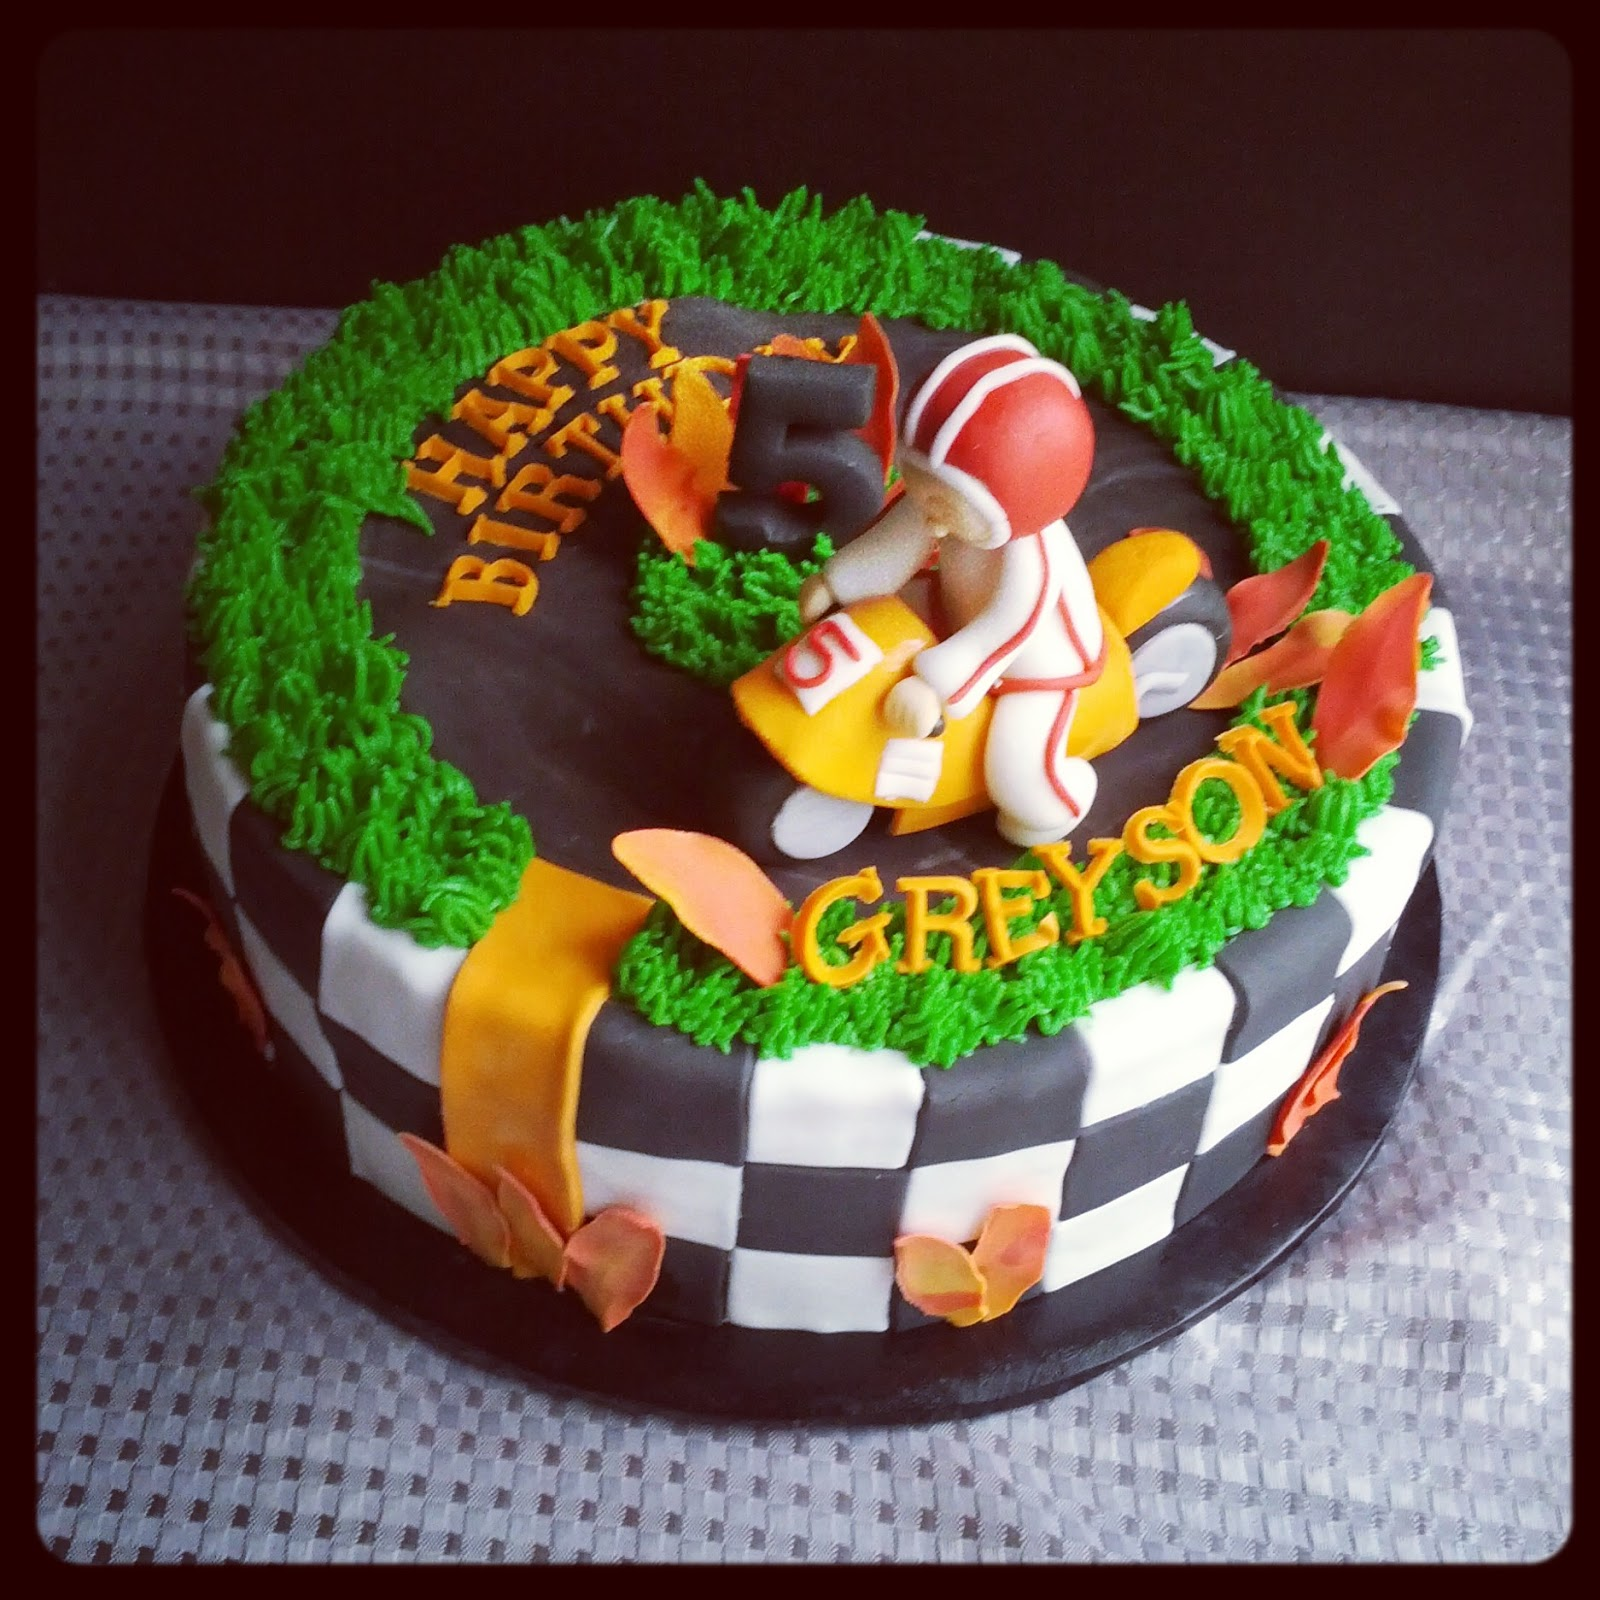 Second Generation Cake Design Motorcycle 5th Birthday Race Track